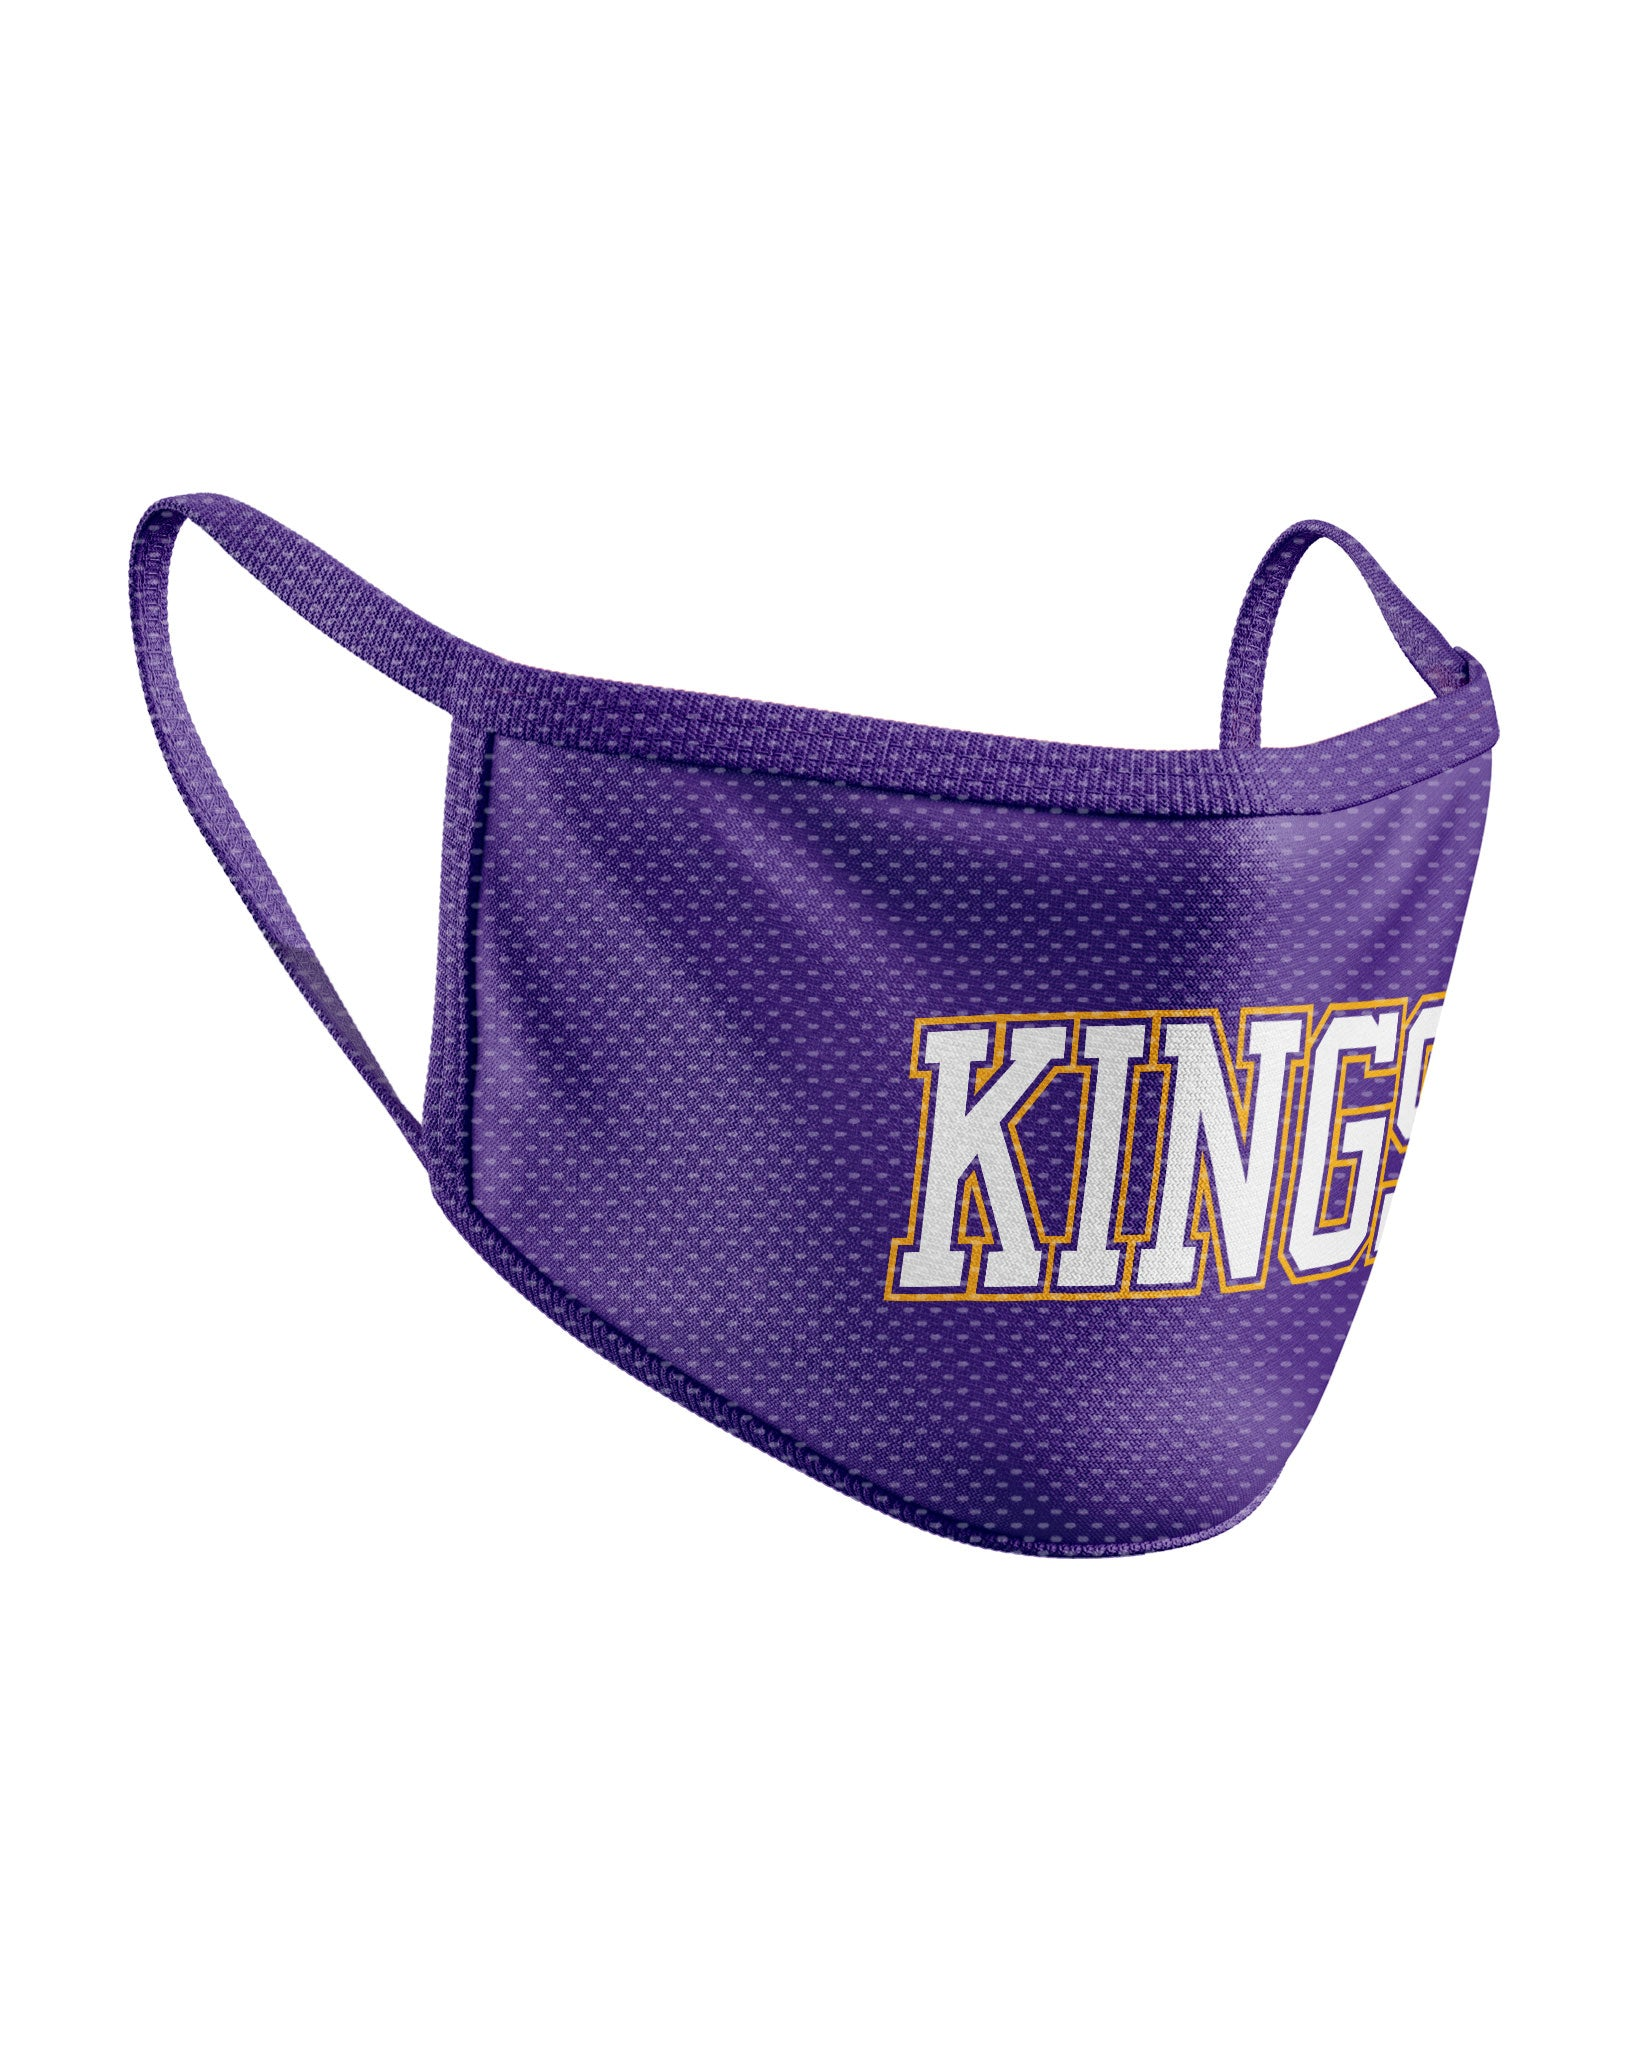 Sydney Kings Face Mask